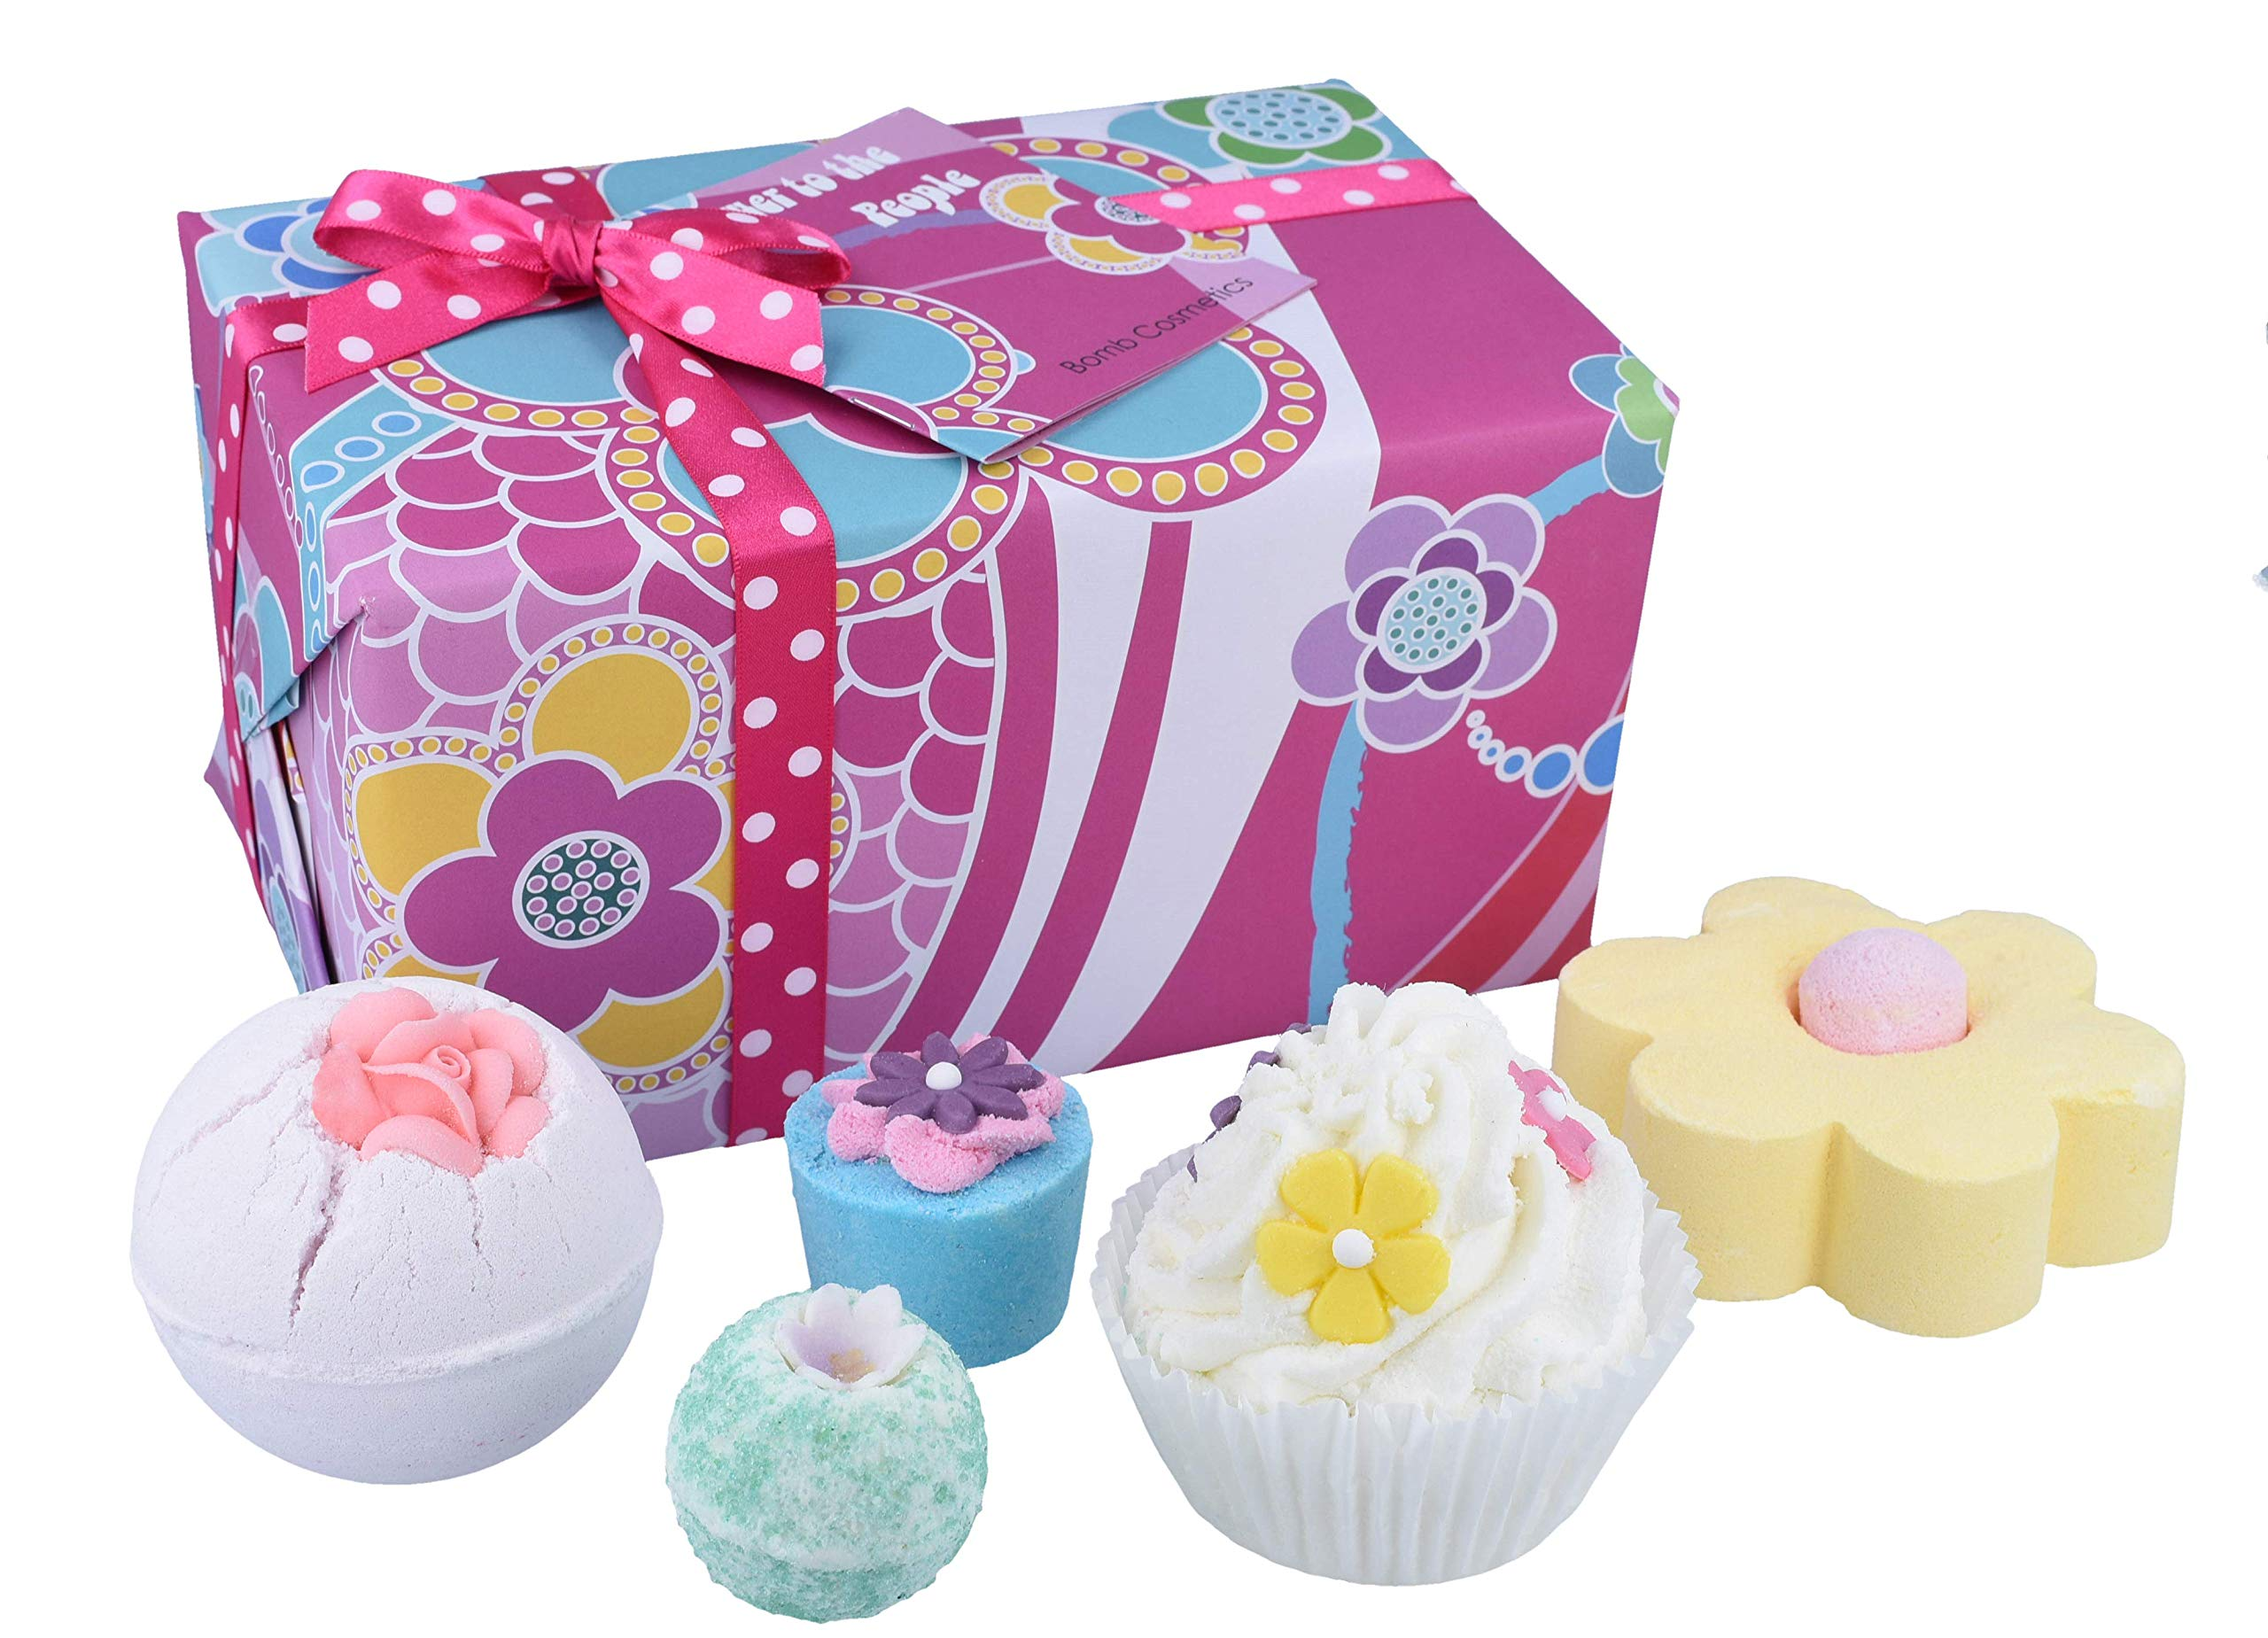 Bomb Cosmetics Flower to the People Handmade Wrapped Gift Pack [Contains 5-Pieces], 520g